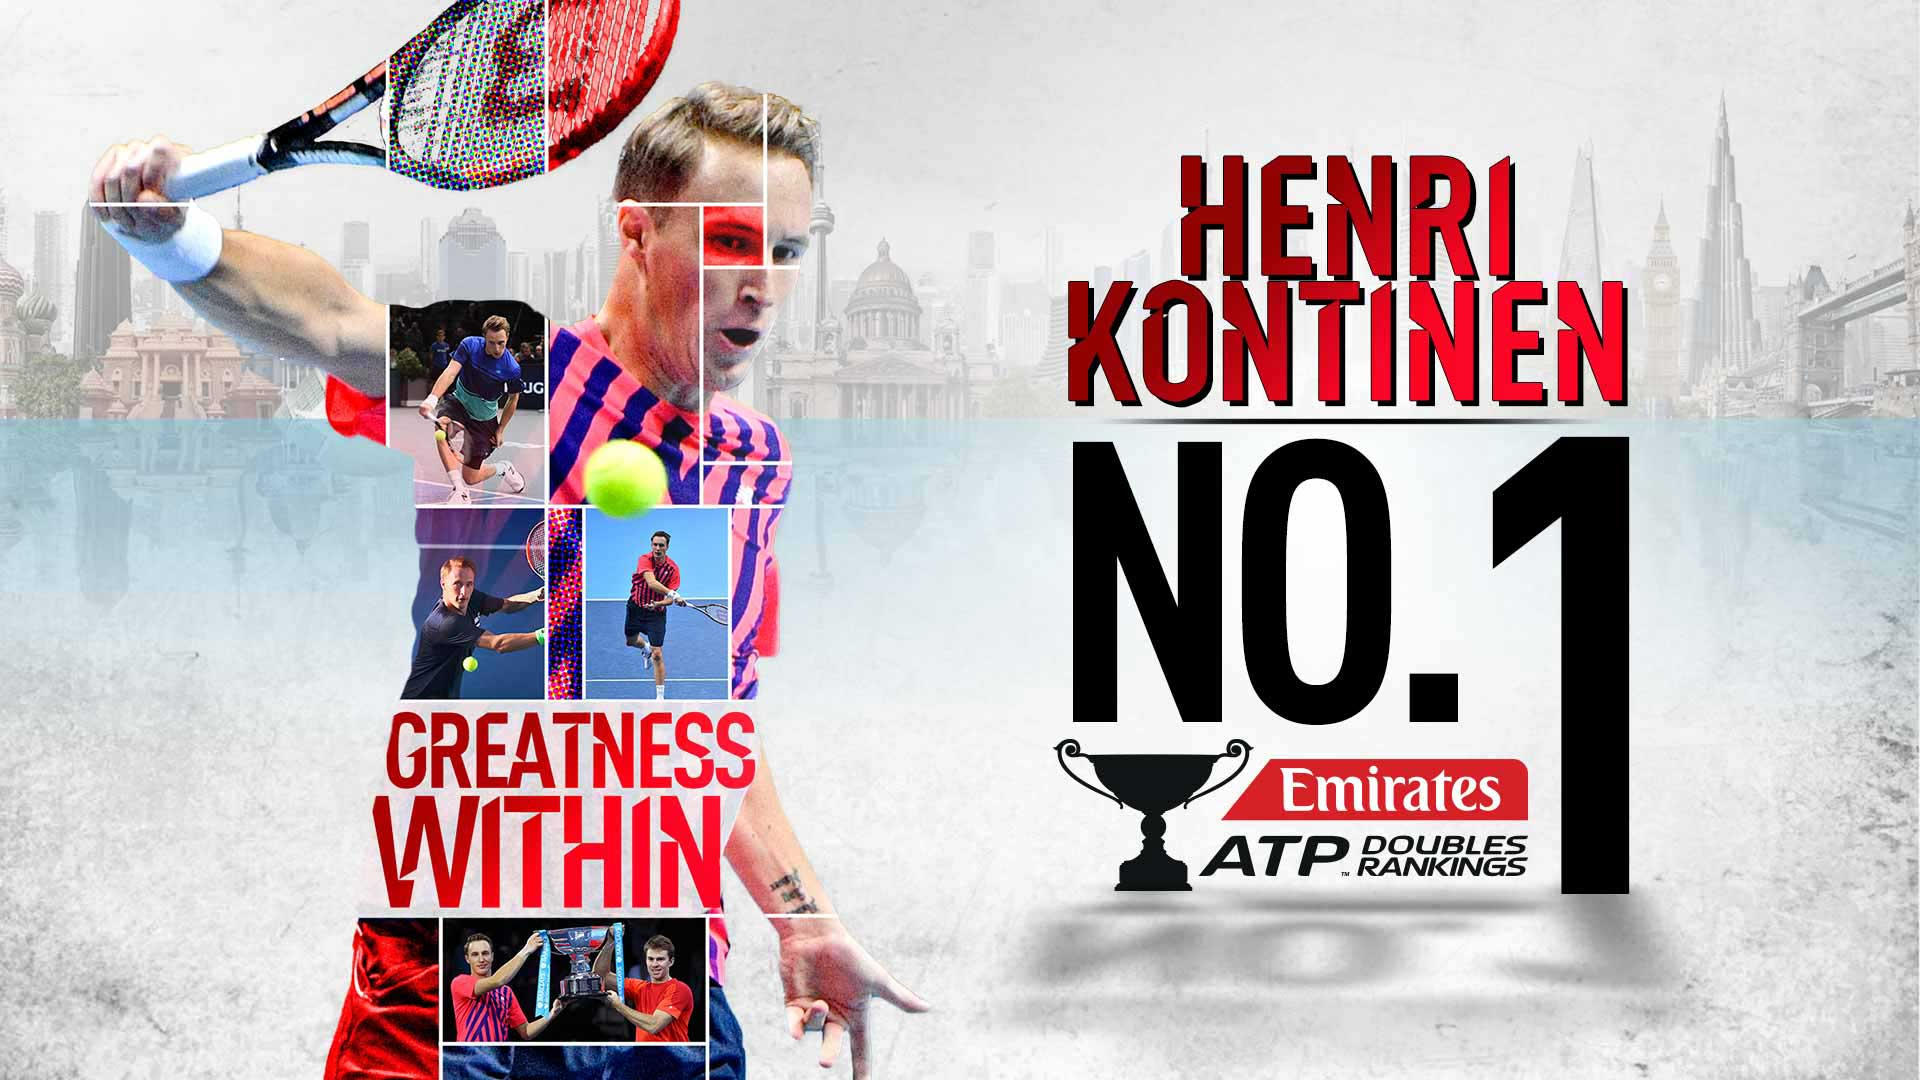 Finland's Henri Kontinen is the 50th player in the history of the Emirates ATP Doubles Rankings to rise to No. 1.